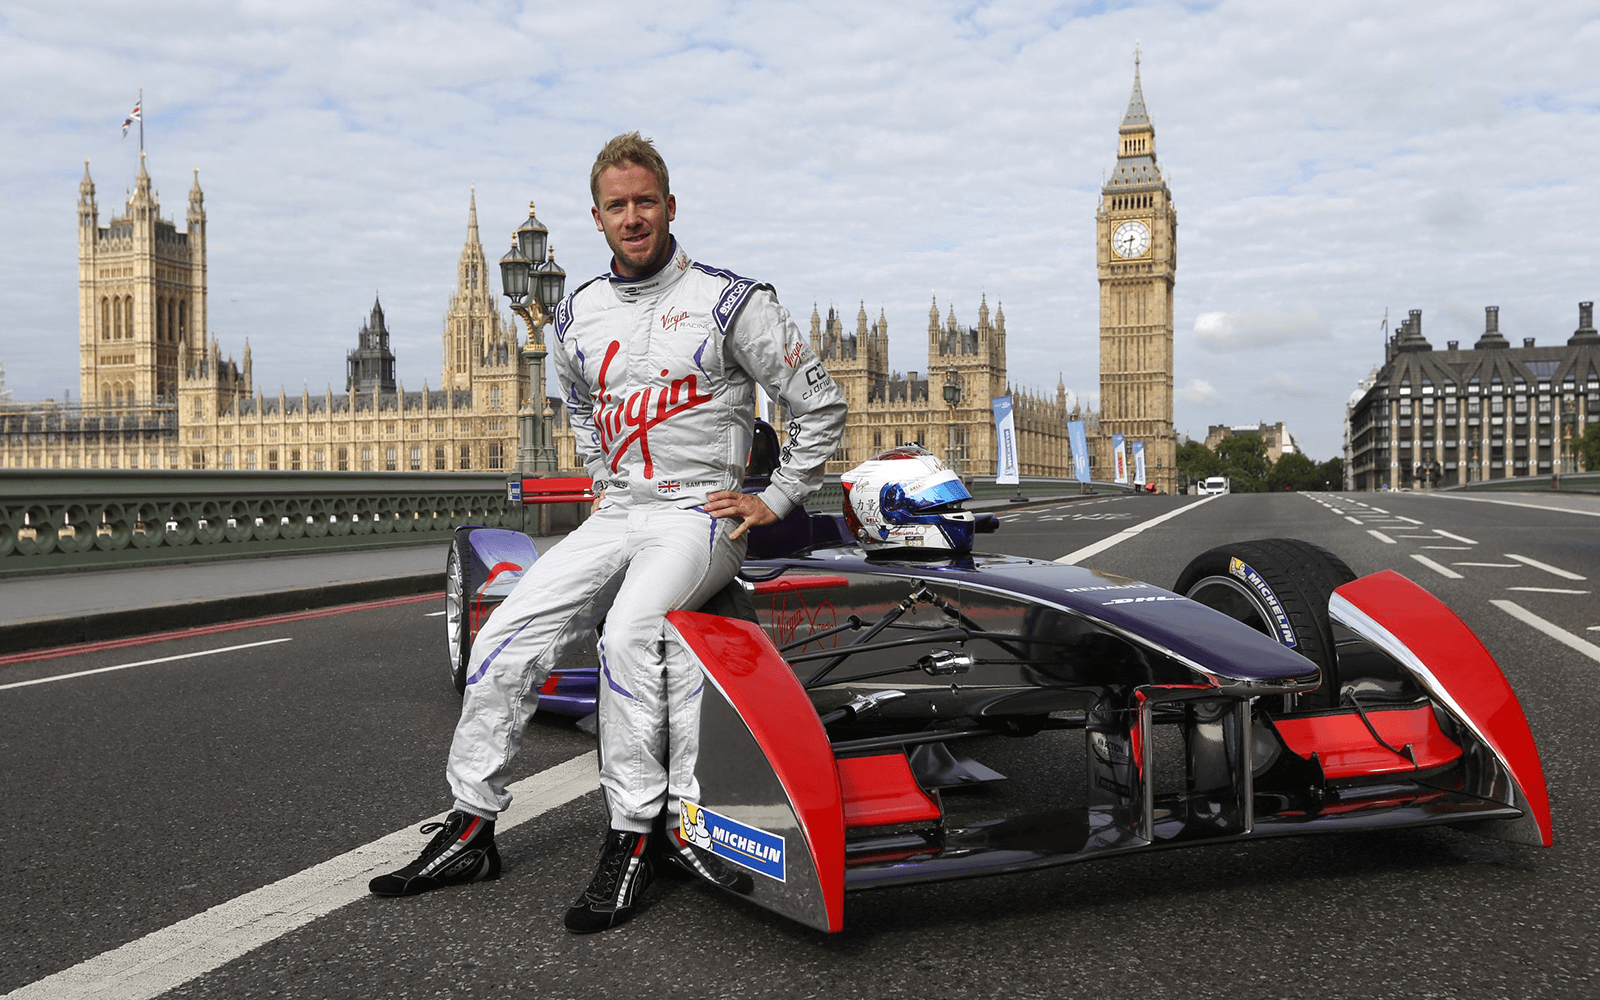 Racing driver, Sam Bird leaning on his car in front of Big Ben